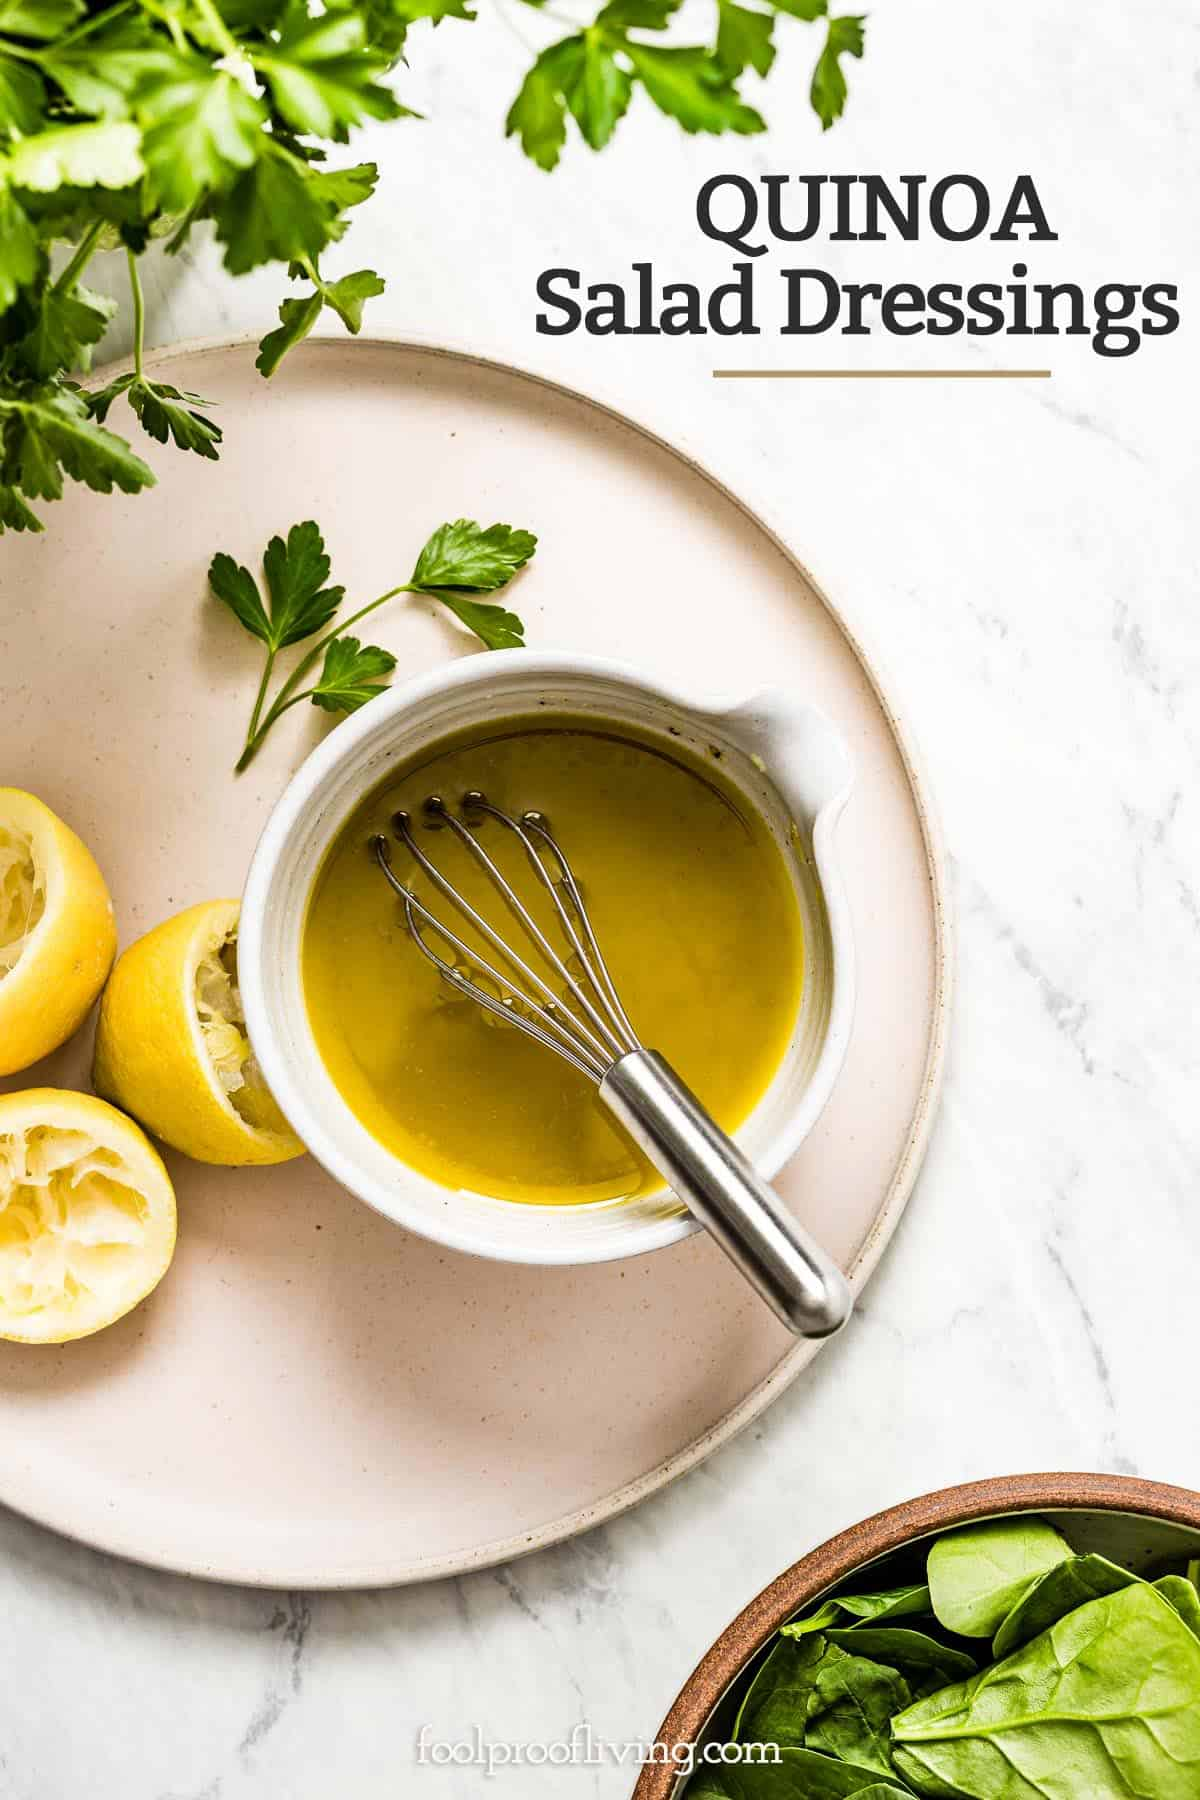 a bowl of lemon vinaigrette with a whisk in the bowl